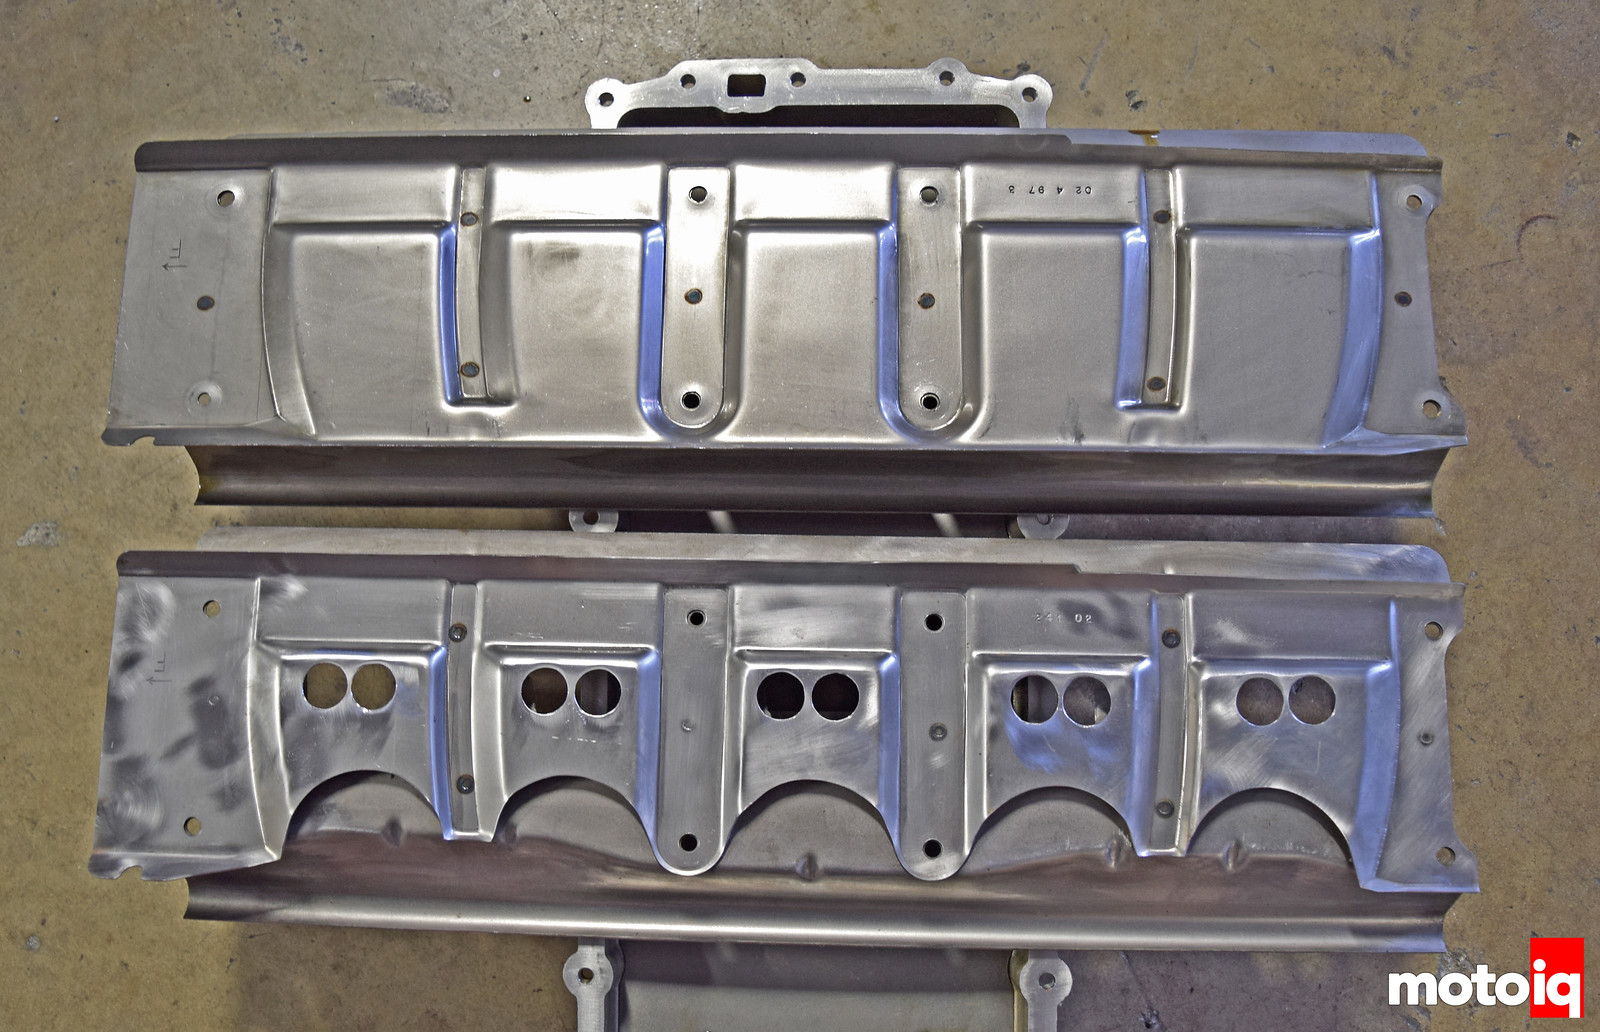 Viper Gen 2 97 vs 2000 Windage Tray Joe Dozzo Mod from RareFab